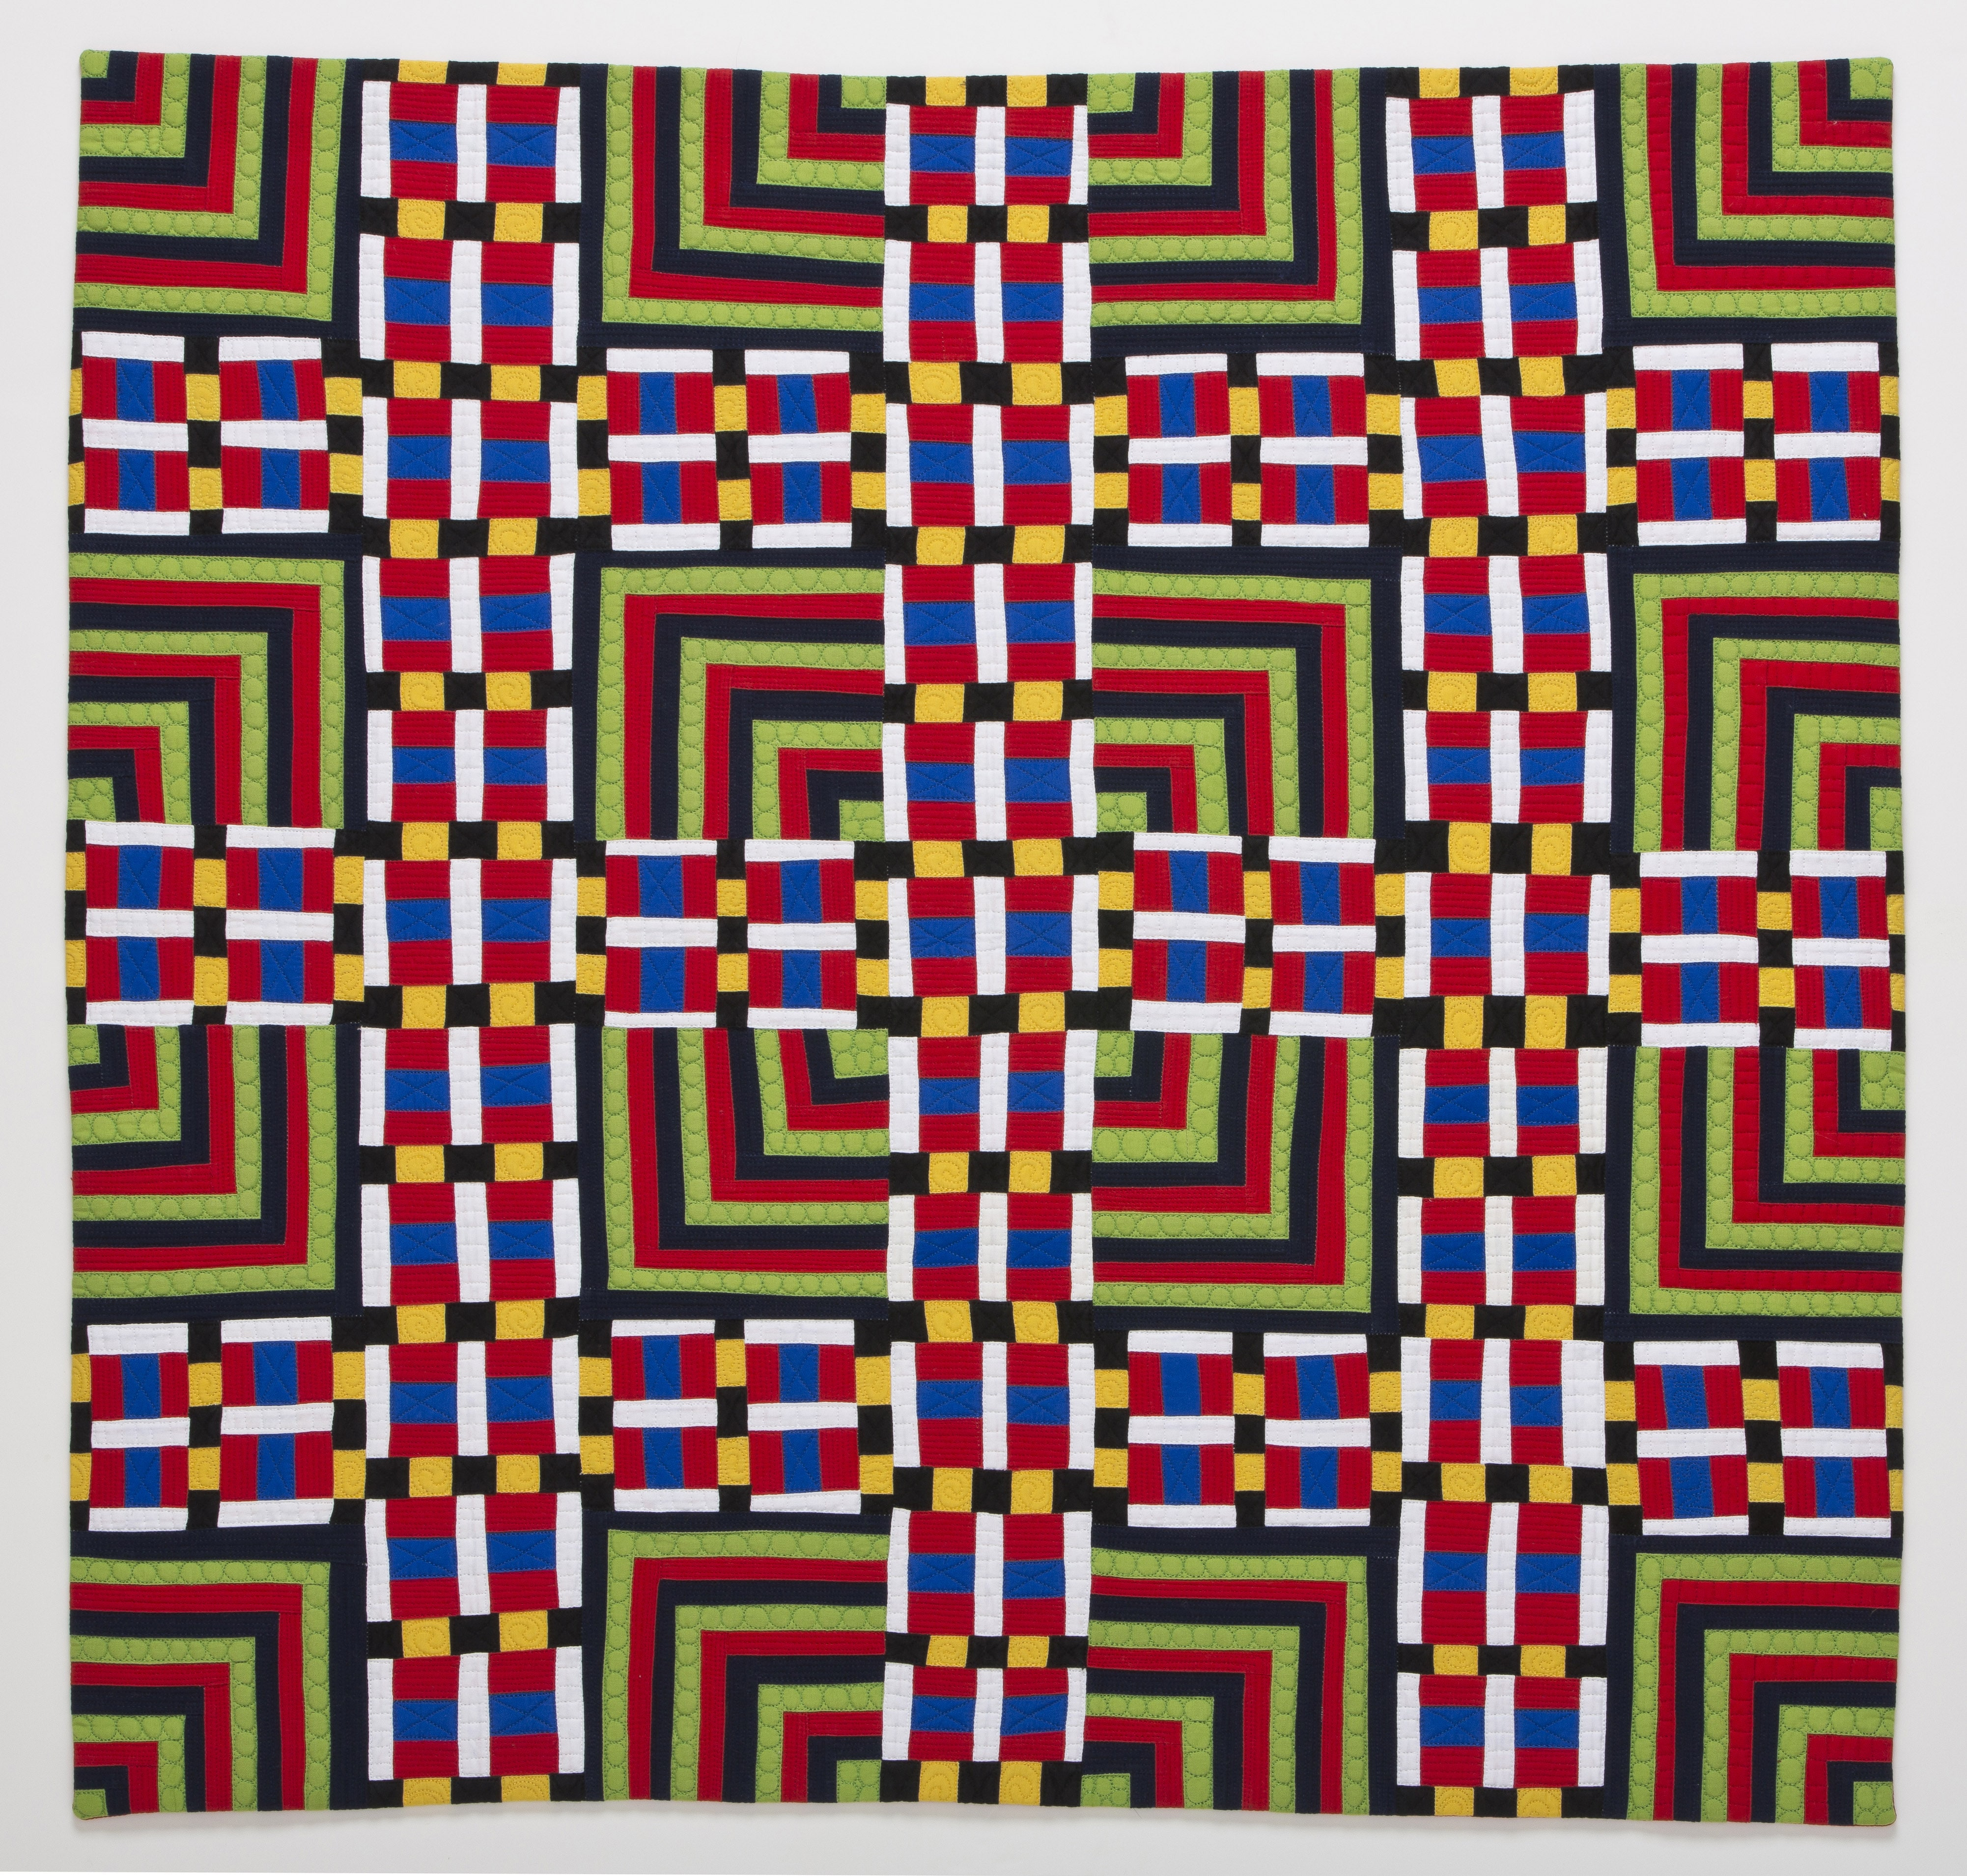 This Quilt is Technotroni